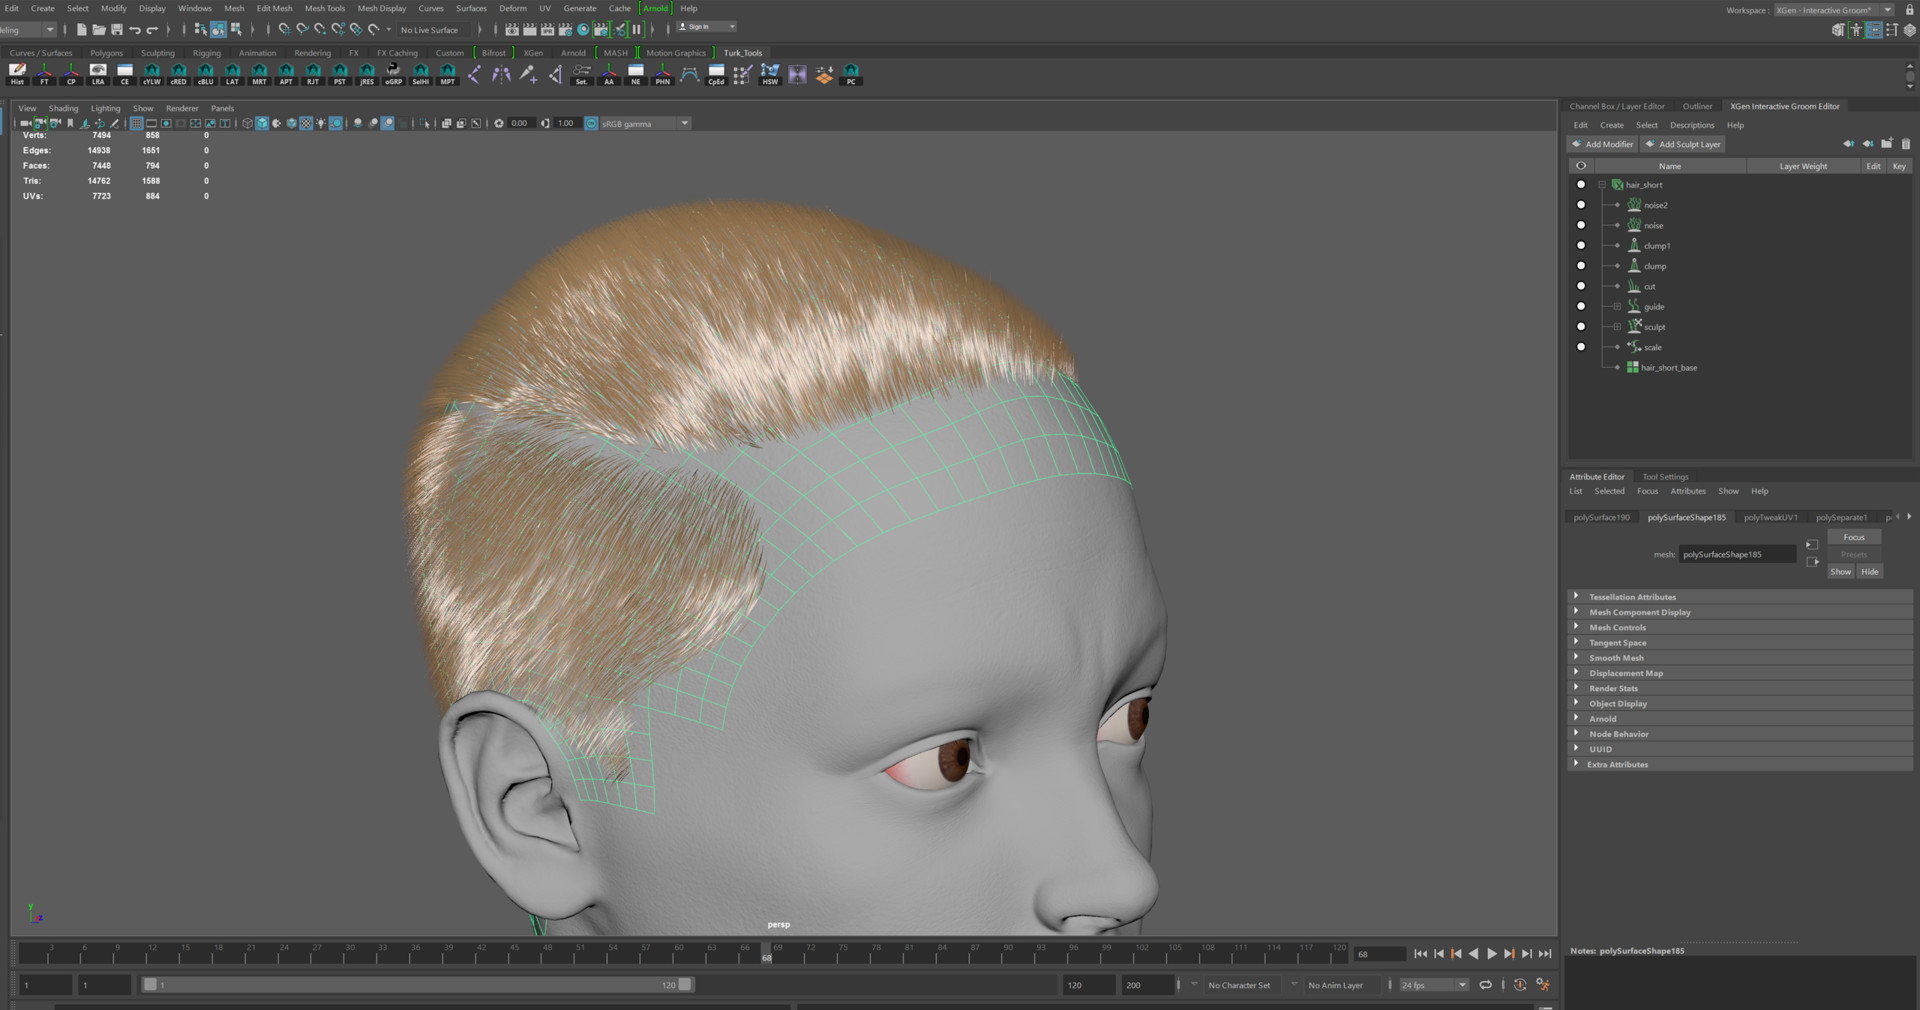 The Hair Cap Is Created By Selecting A Section Of The Head Geo, Duplicating  And Growing The Hair Using Xgen Interactive Groom Editor